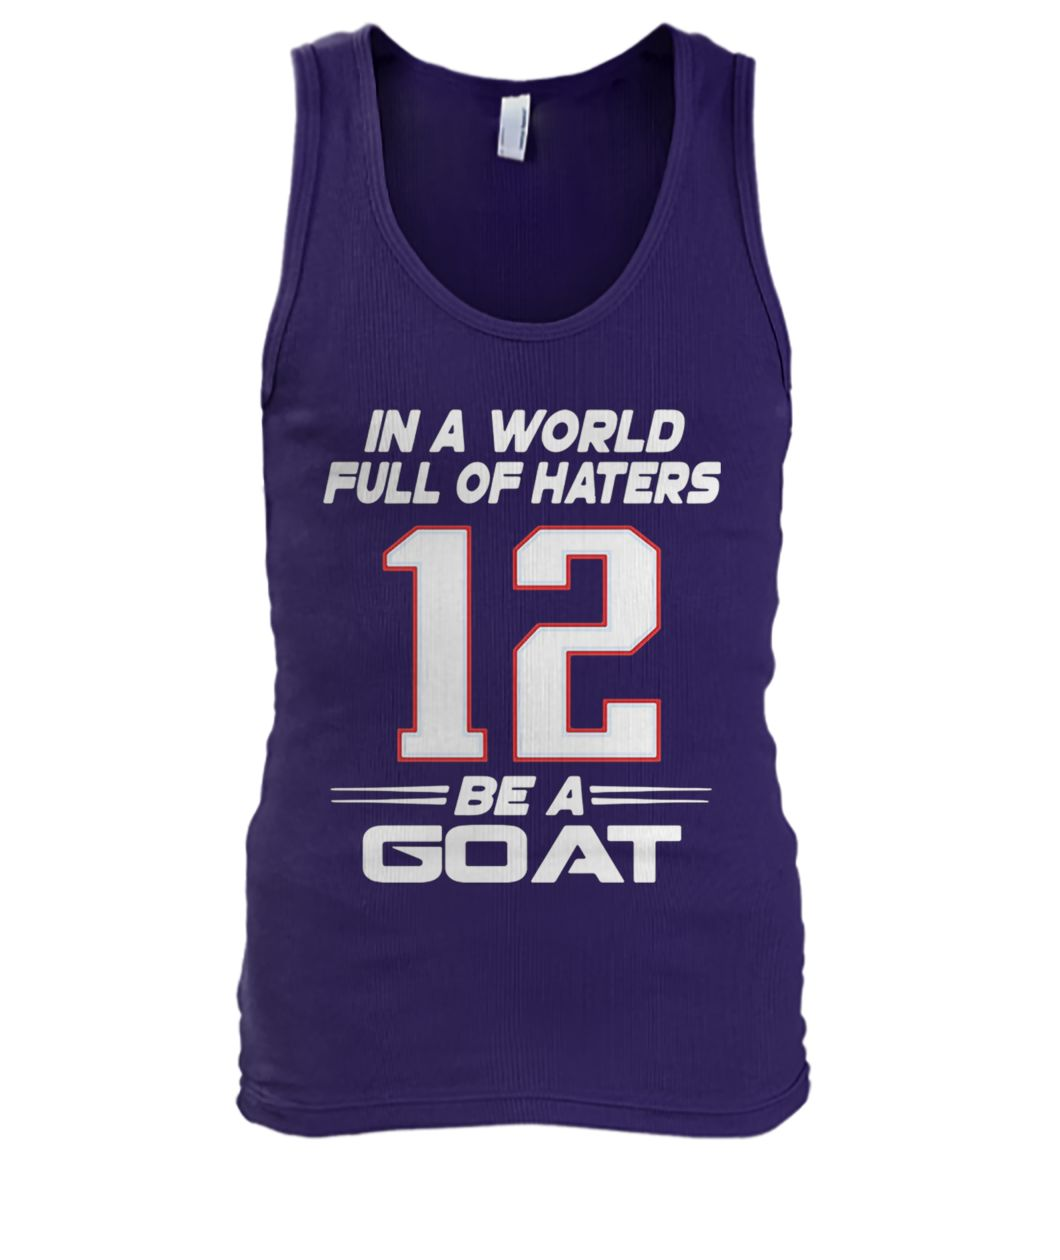 Tom brady 12 in a world full of hates be a goat men's tank top